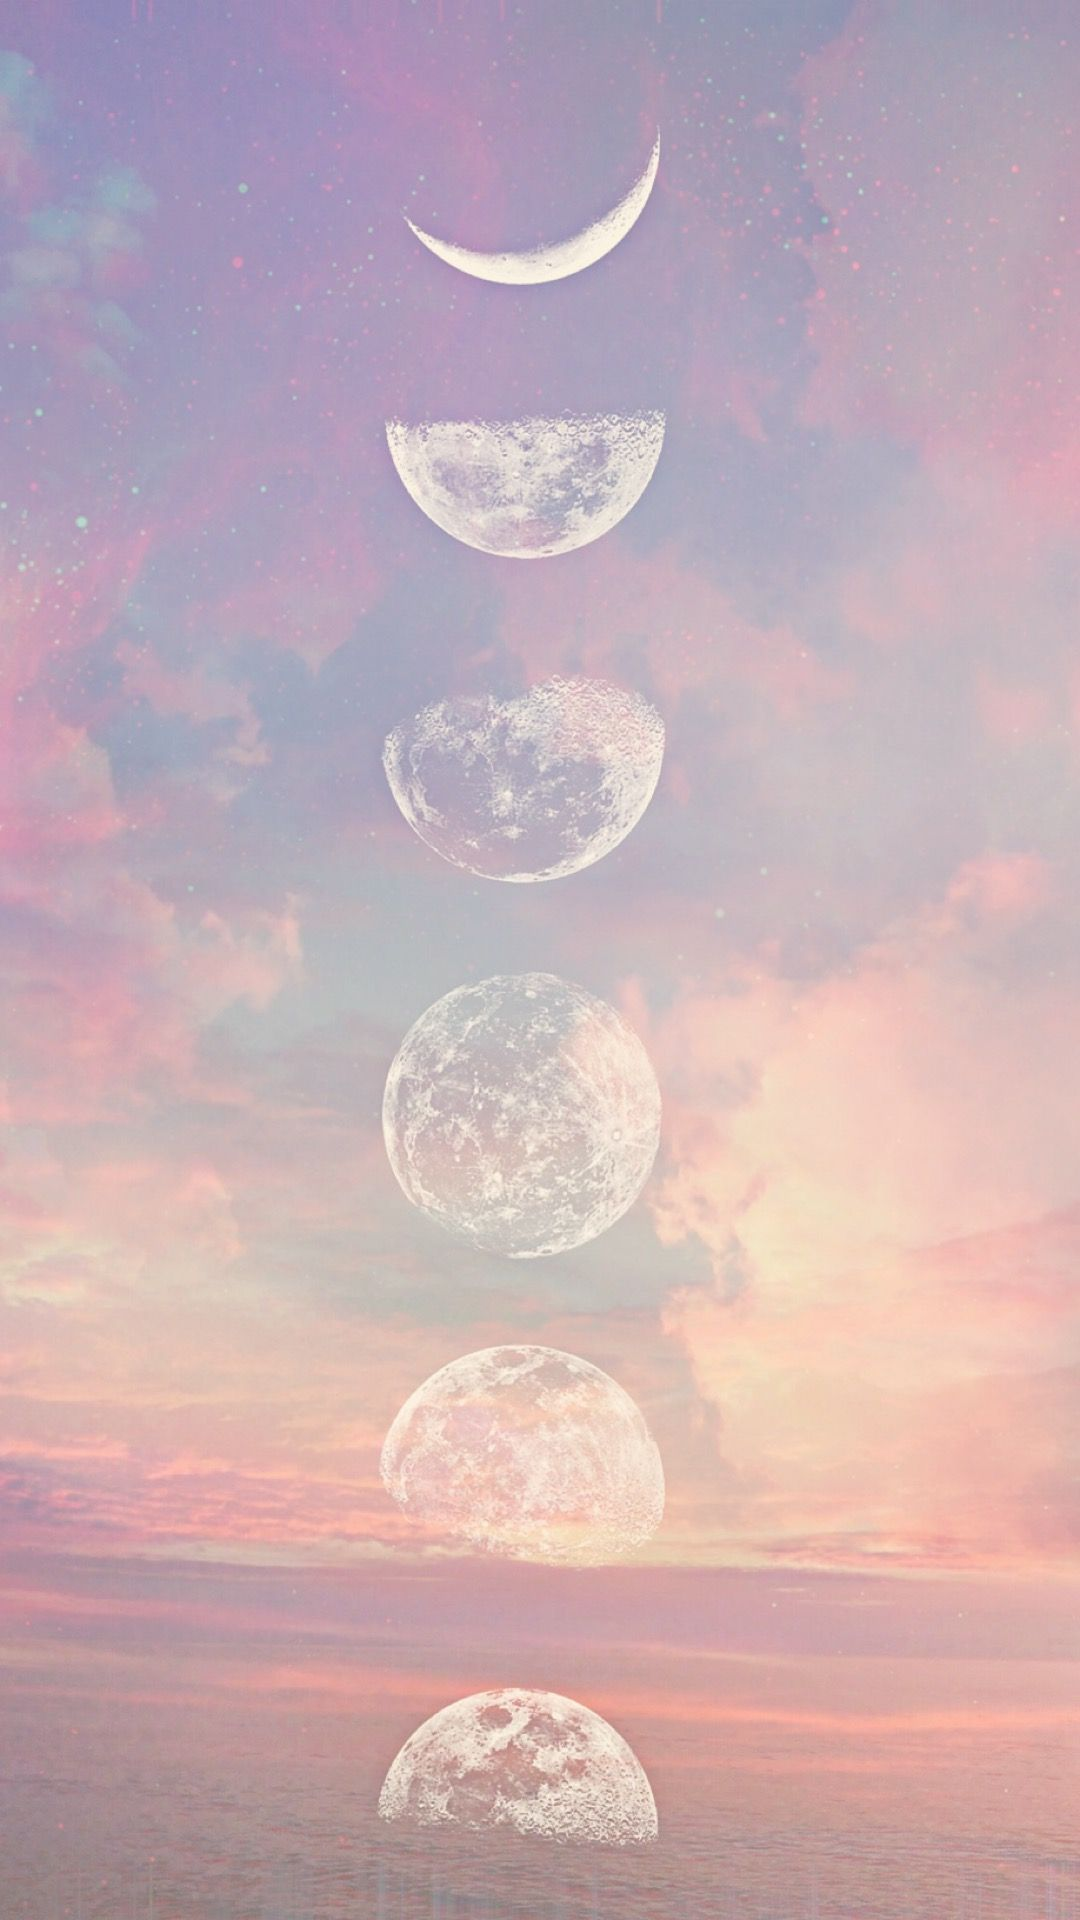 Pin by Ambermwarner on wallpaper   Pretty wallpapers, Backgrounds ...